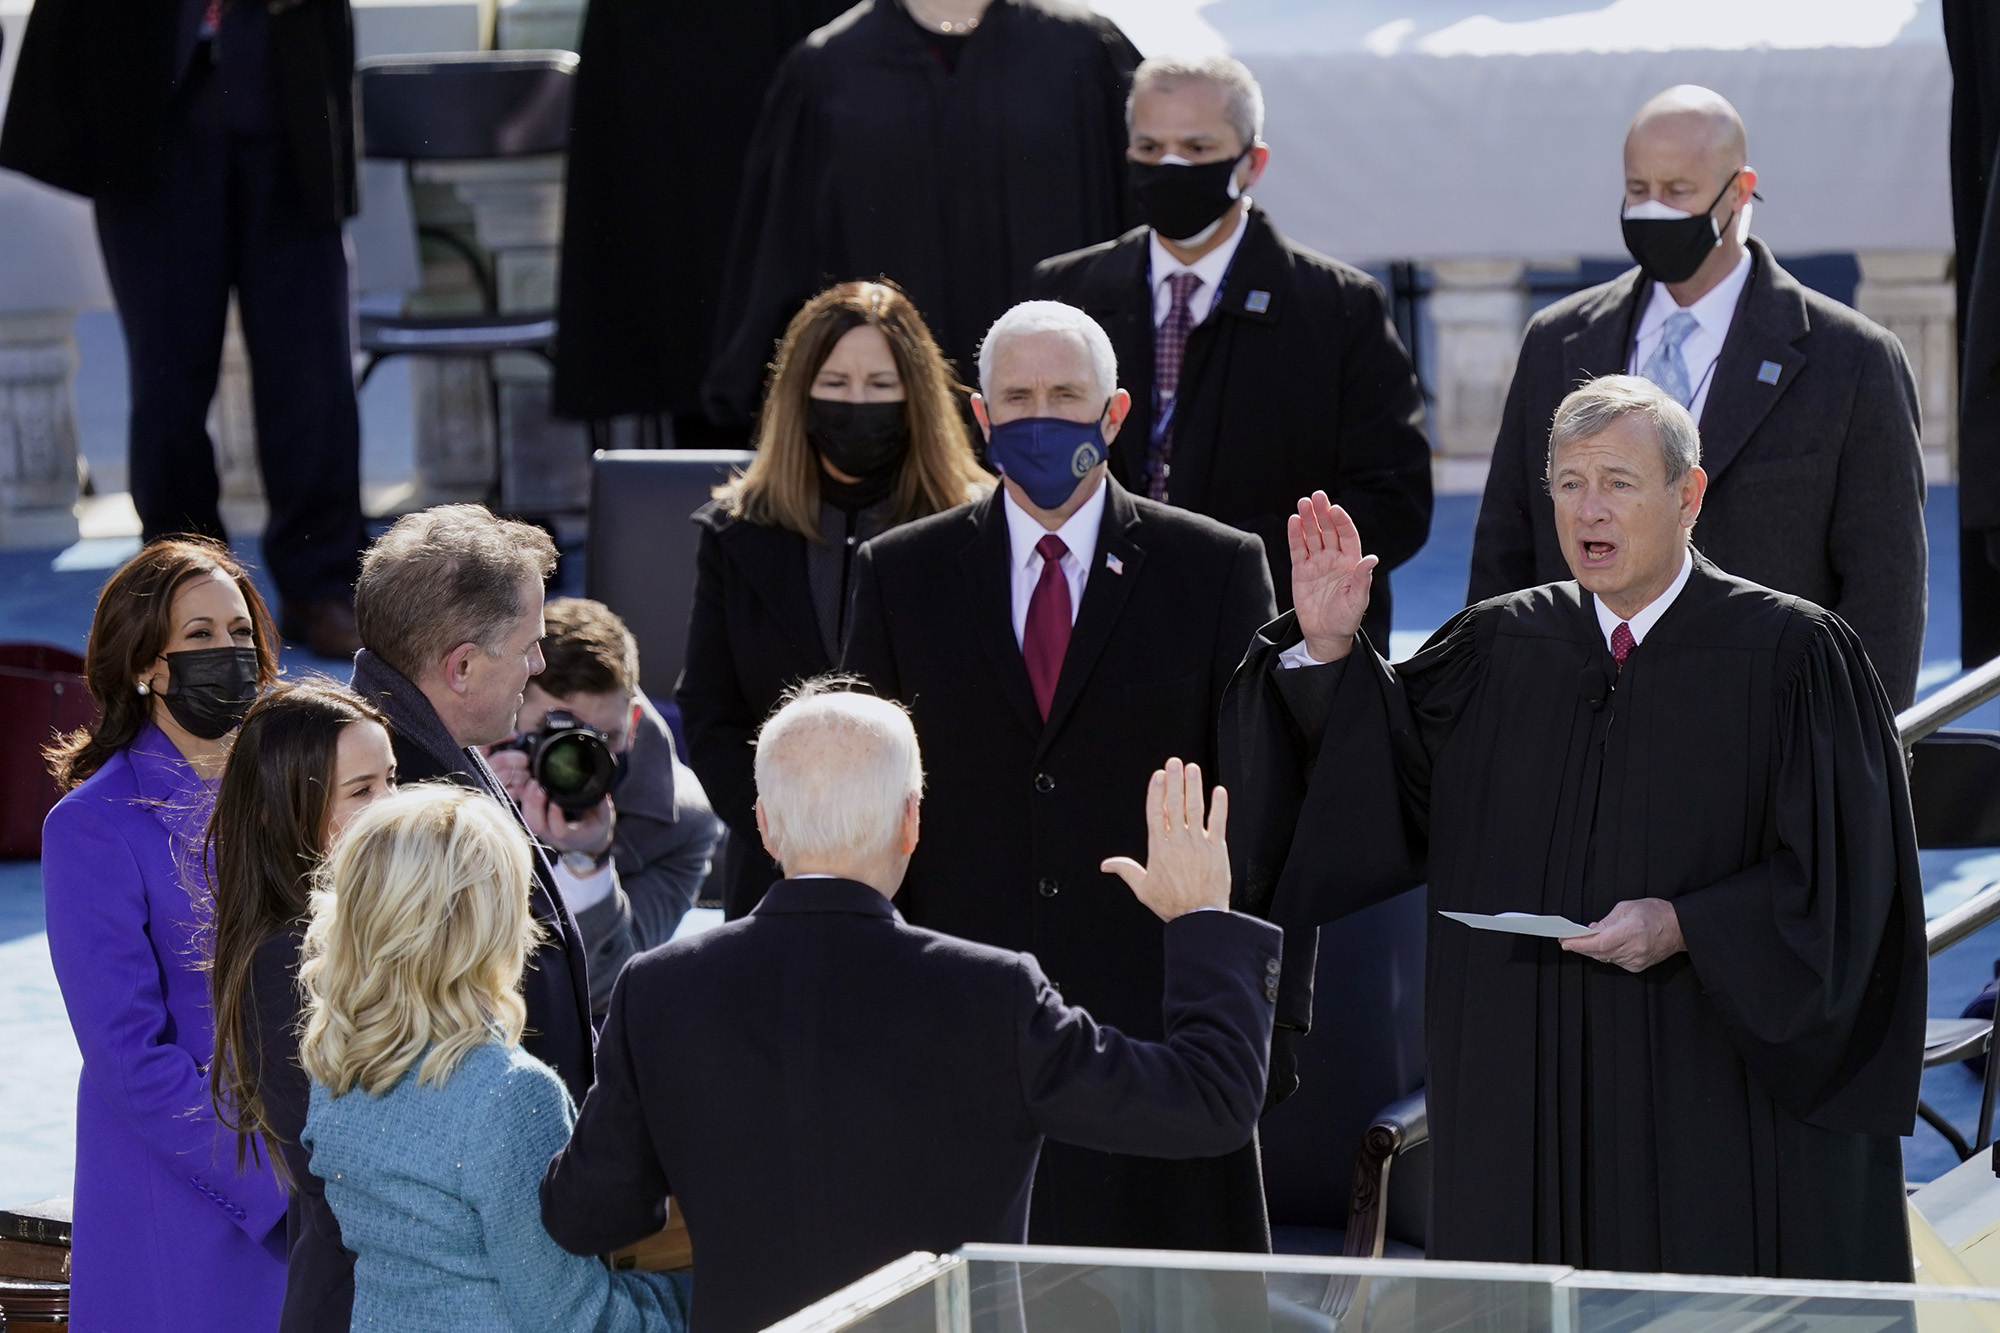 Joe Biden is sworn in as the 46th President of the United States by Chief Justice John Roberts, while Jill Biden holds the Bible during the 59th Inauguration of the President at the U.S. Capitol in Washington on Wednesday, January 20, 2021. (Carolyn Kaster / AP)